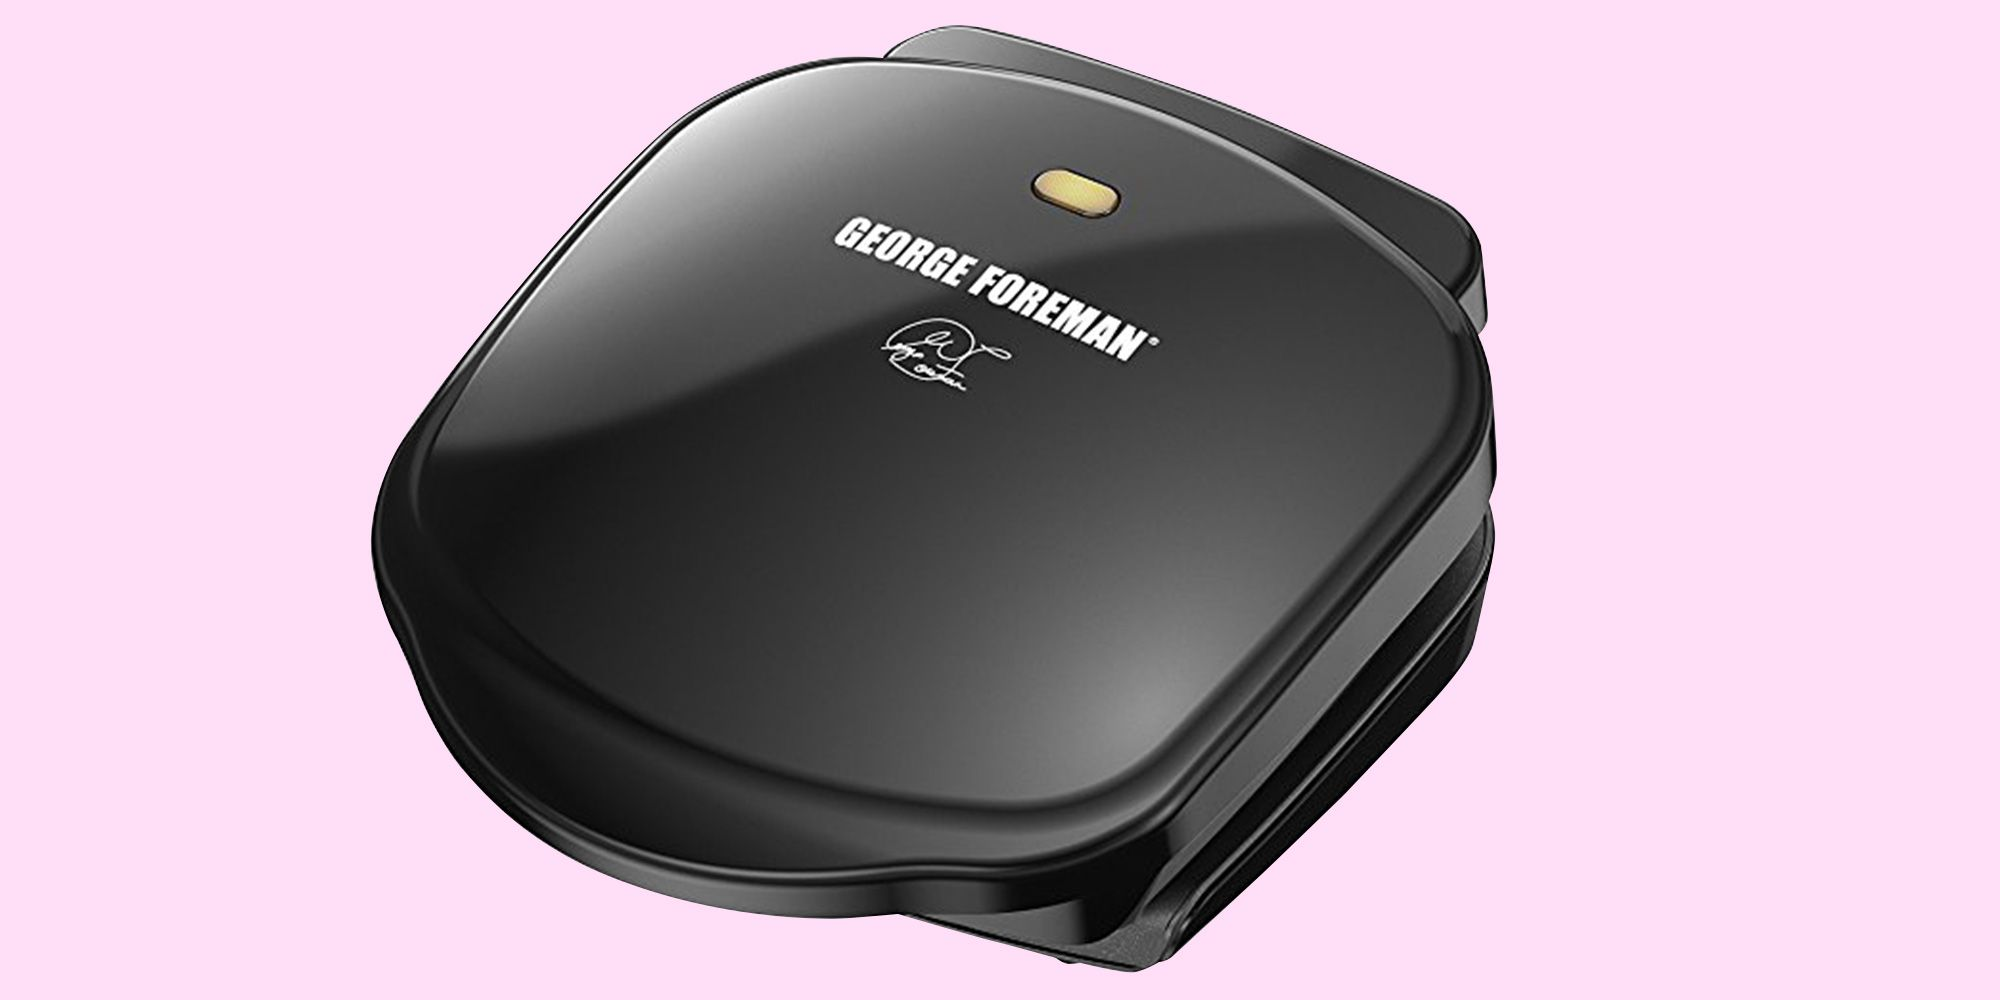 The George Foreman Grill Helped Me Lose 100 Pounds